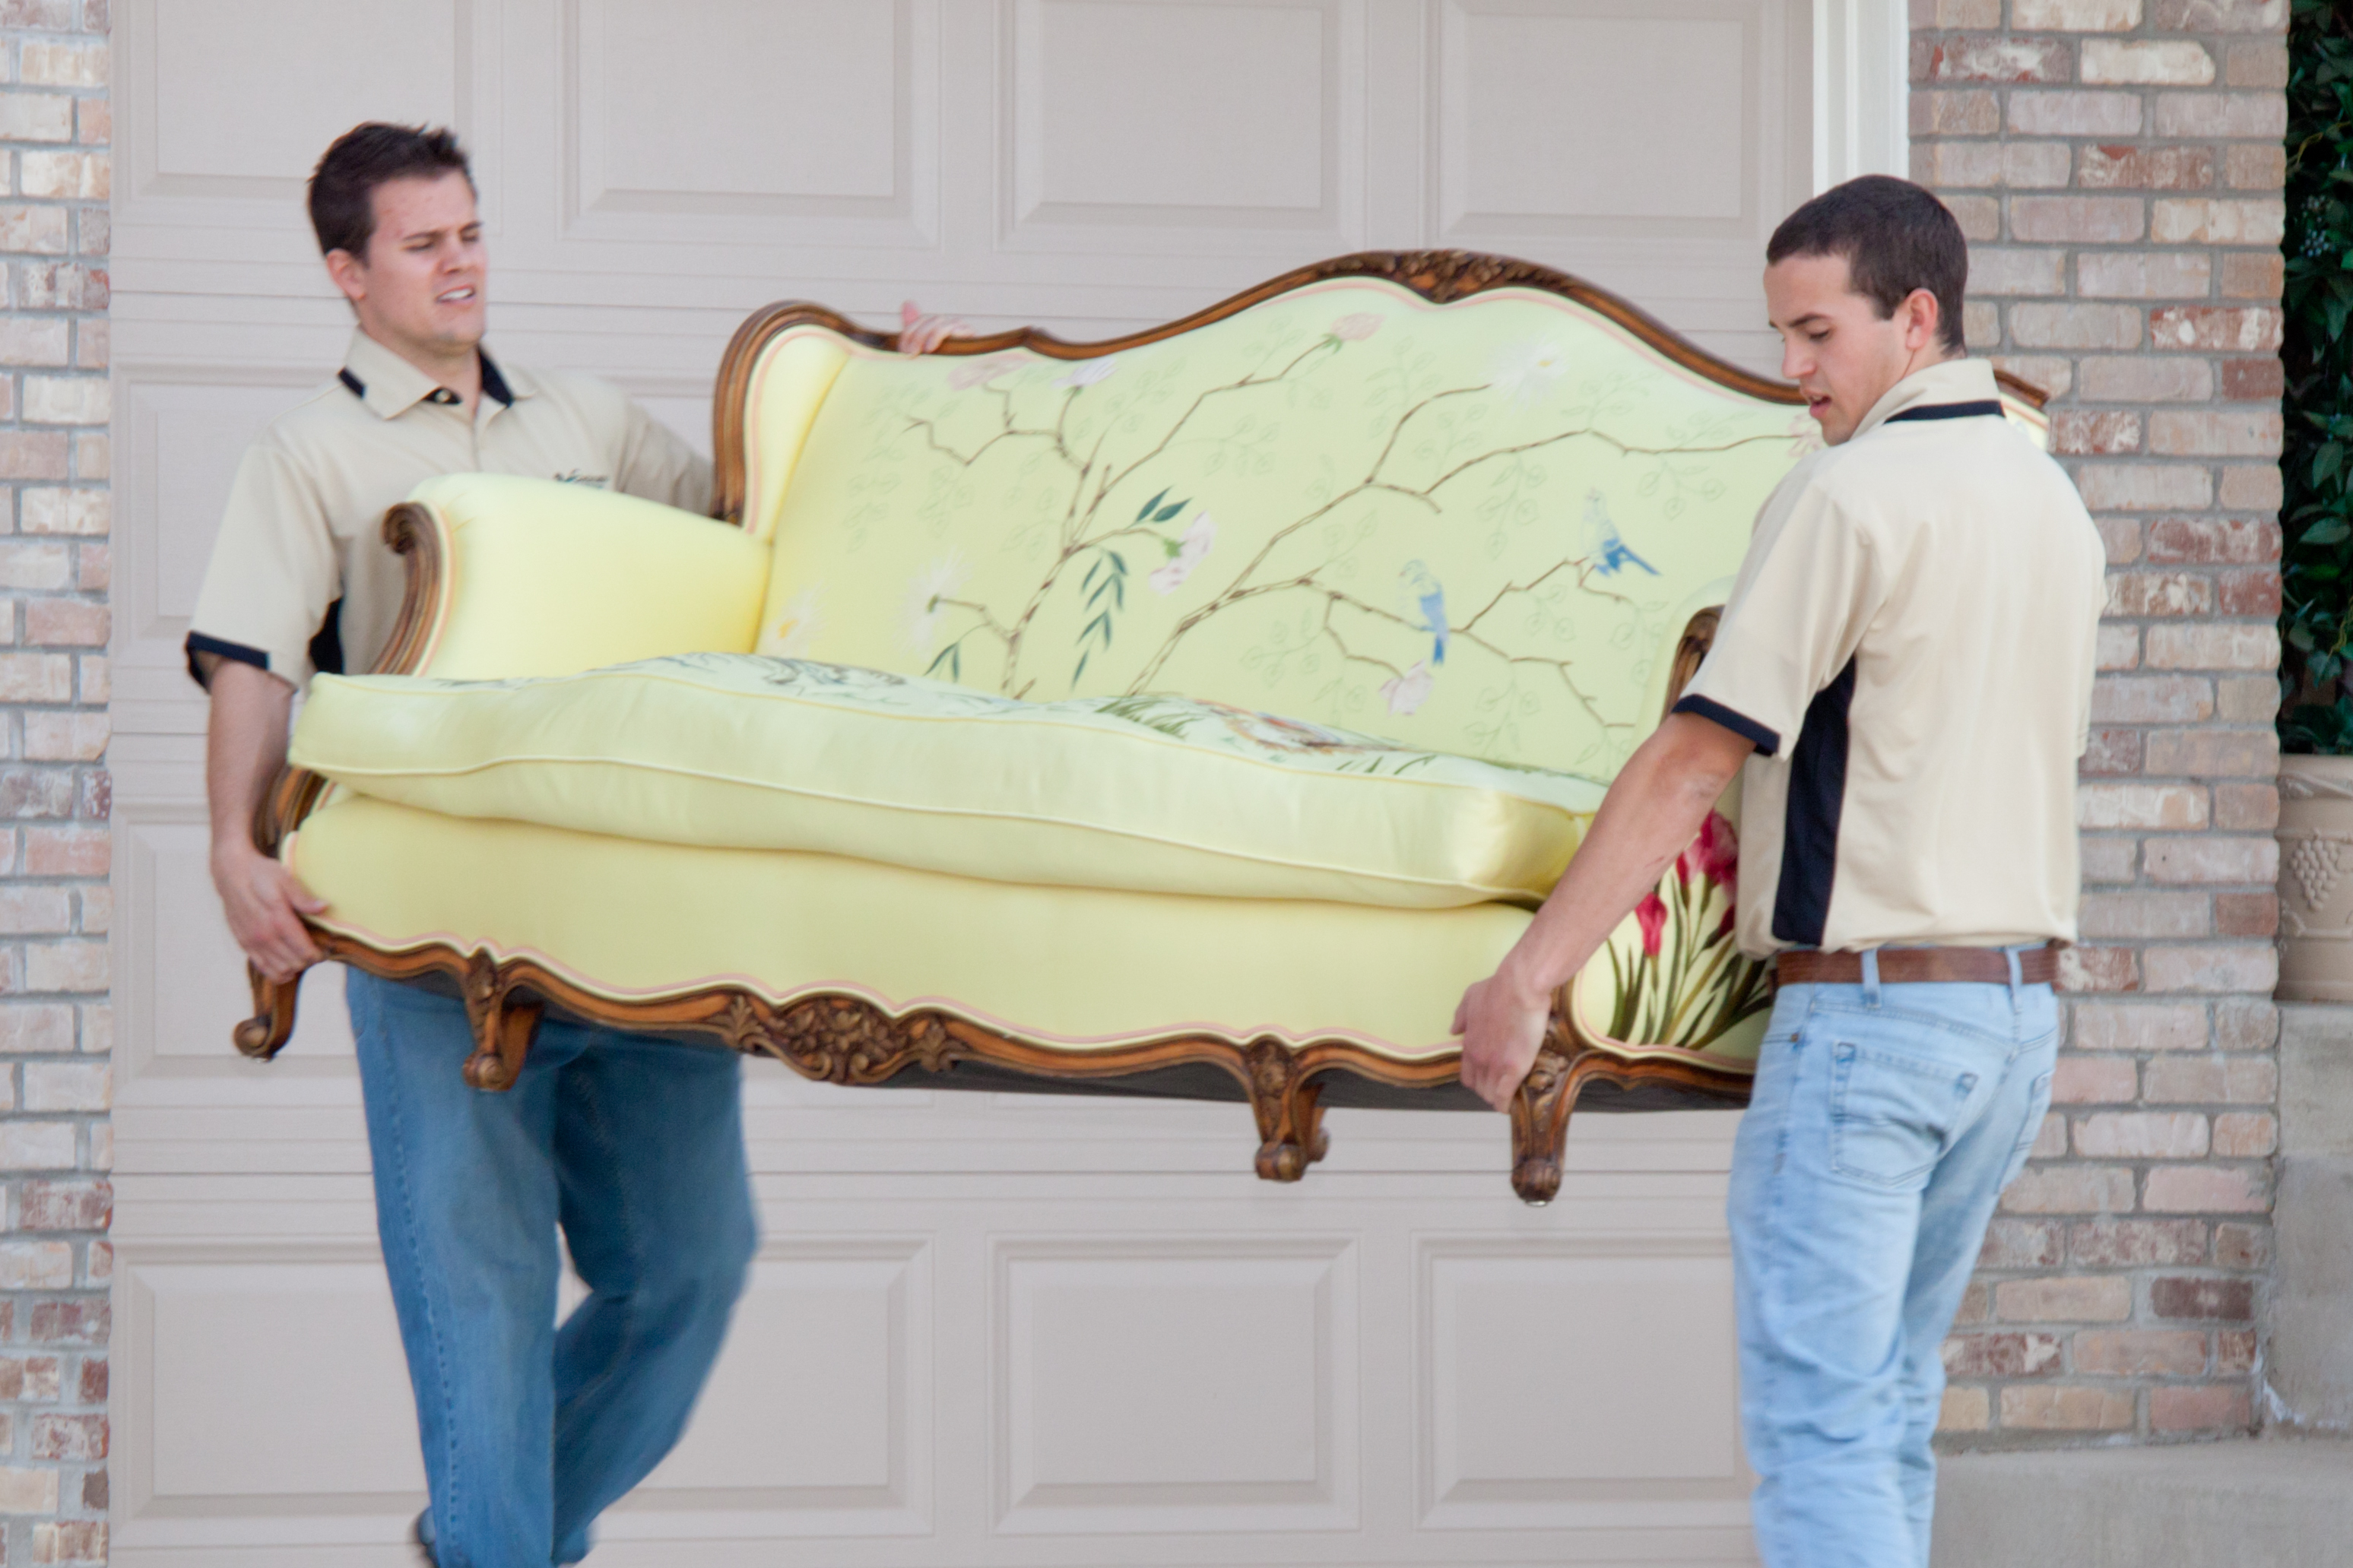 Lighten The Burden Of Relocating By Using Professional Moving Services